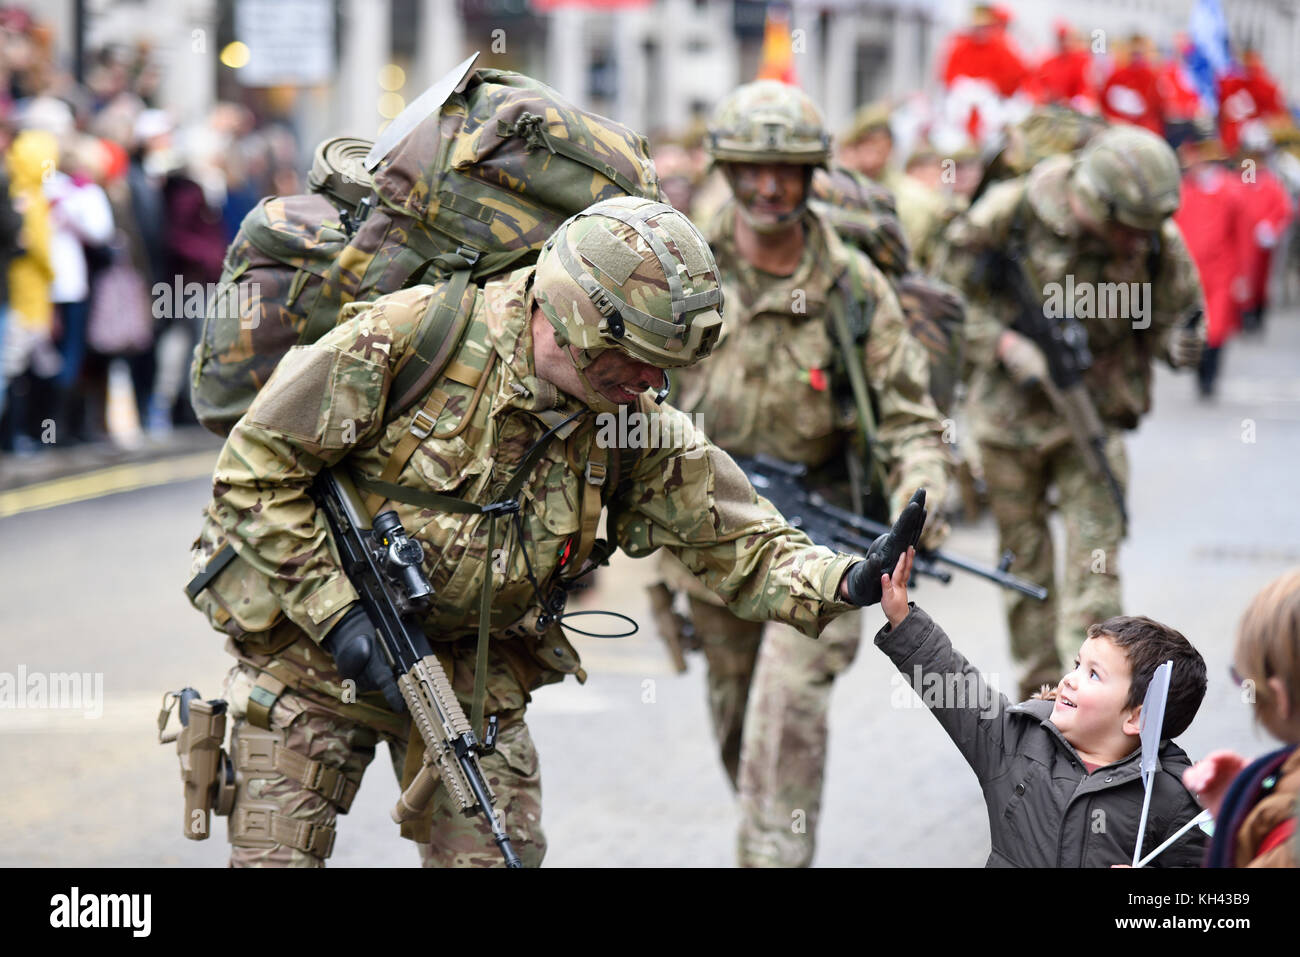 honourable-artillery-company-soldier-high-fives-with-a-delighted-boy-KH43B9.jpg